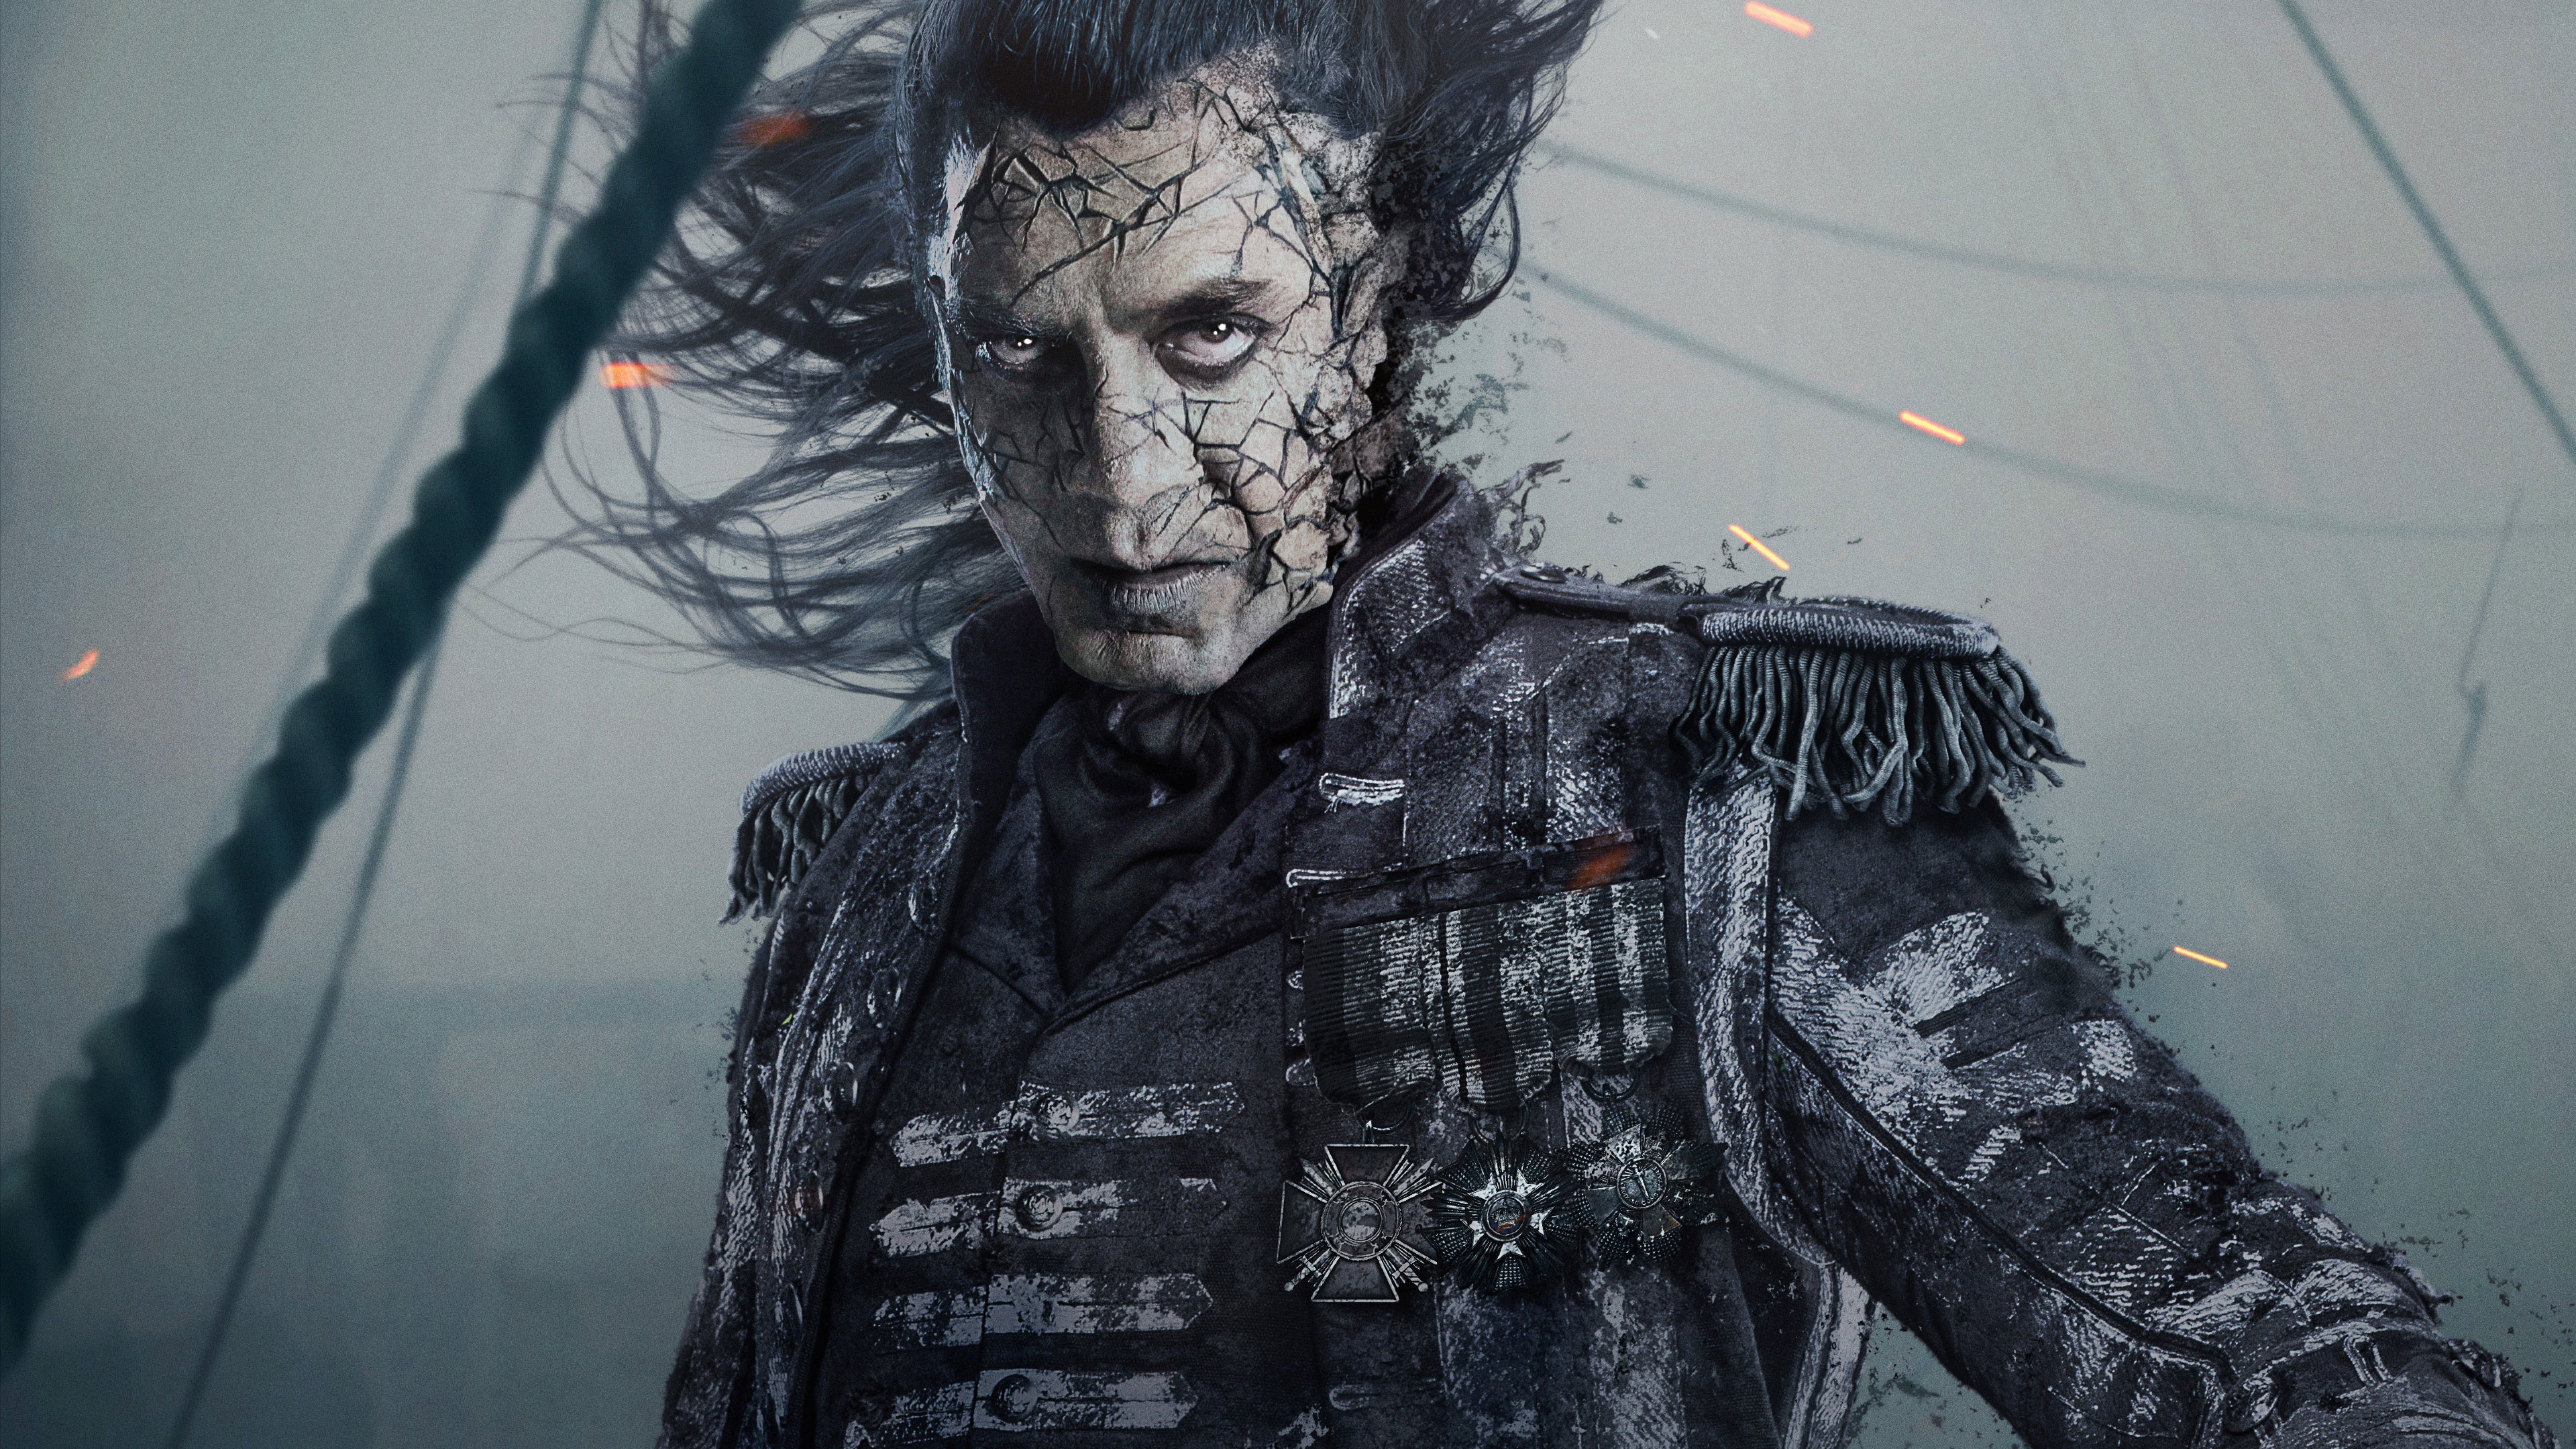 3840x2160 Captain Salaza In Pirates Of The Caribbean Dead Men Tell